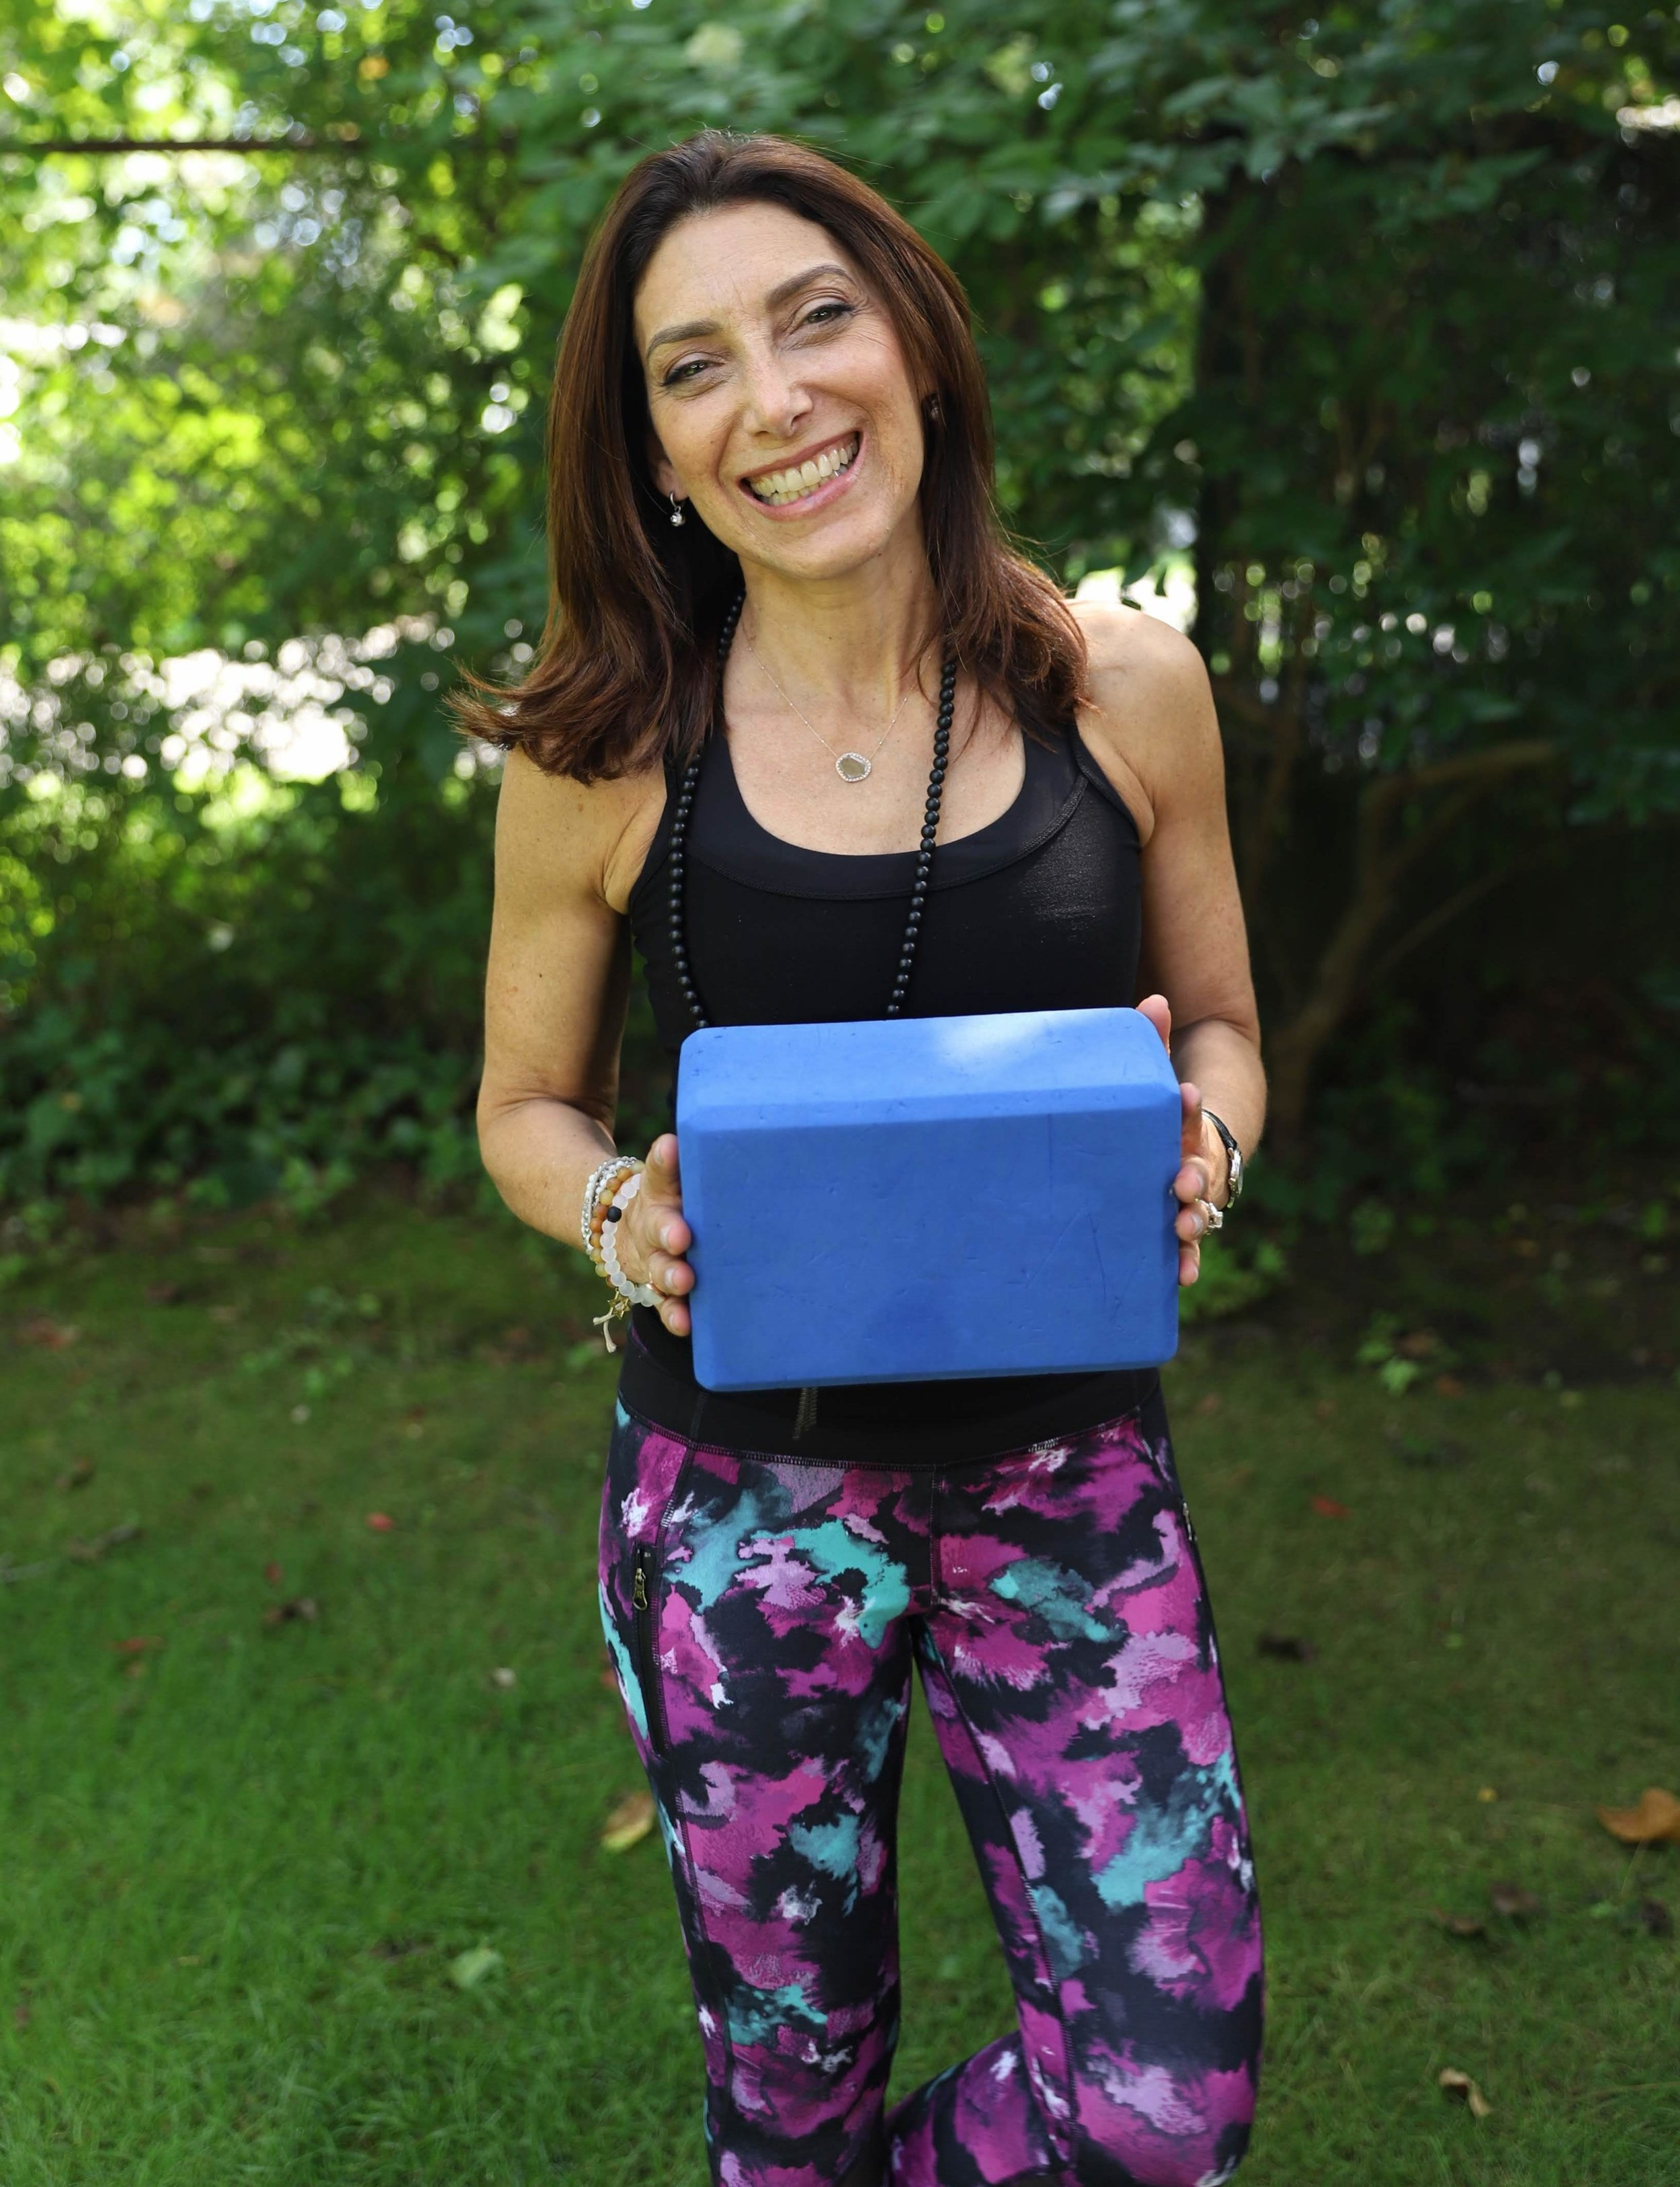 """SHARON - """"My experience being coached by Emily exceeded my expectations! The results were SO positive and successful-- I'm now making more money, commuting less, and enjoying more time to myself. I had hesitations about working with her as I did not know her very well beyond her social media presence and being about twice her age I was concerned that we would feel the age gap. Emily's younger age and strong handle on social media use turned out to be assets to our coaching relationship. She helped me get clarity around how to increase my income by focusing on private clients. She helped me to see and own my value as a yoga teacher. """" Sharon"""